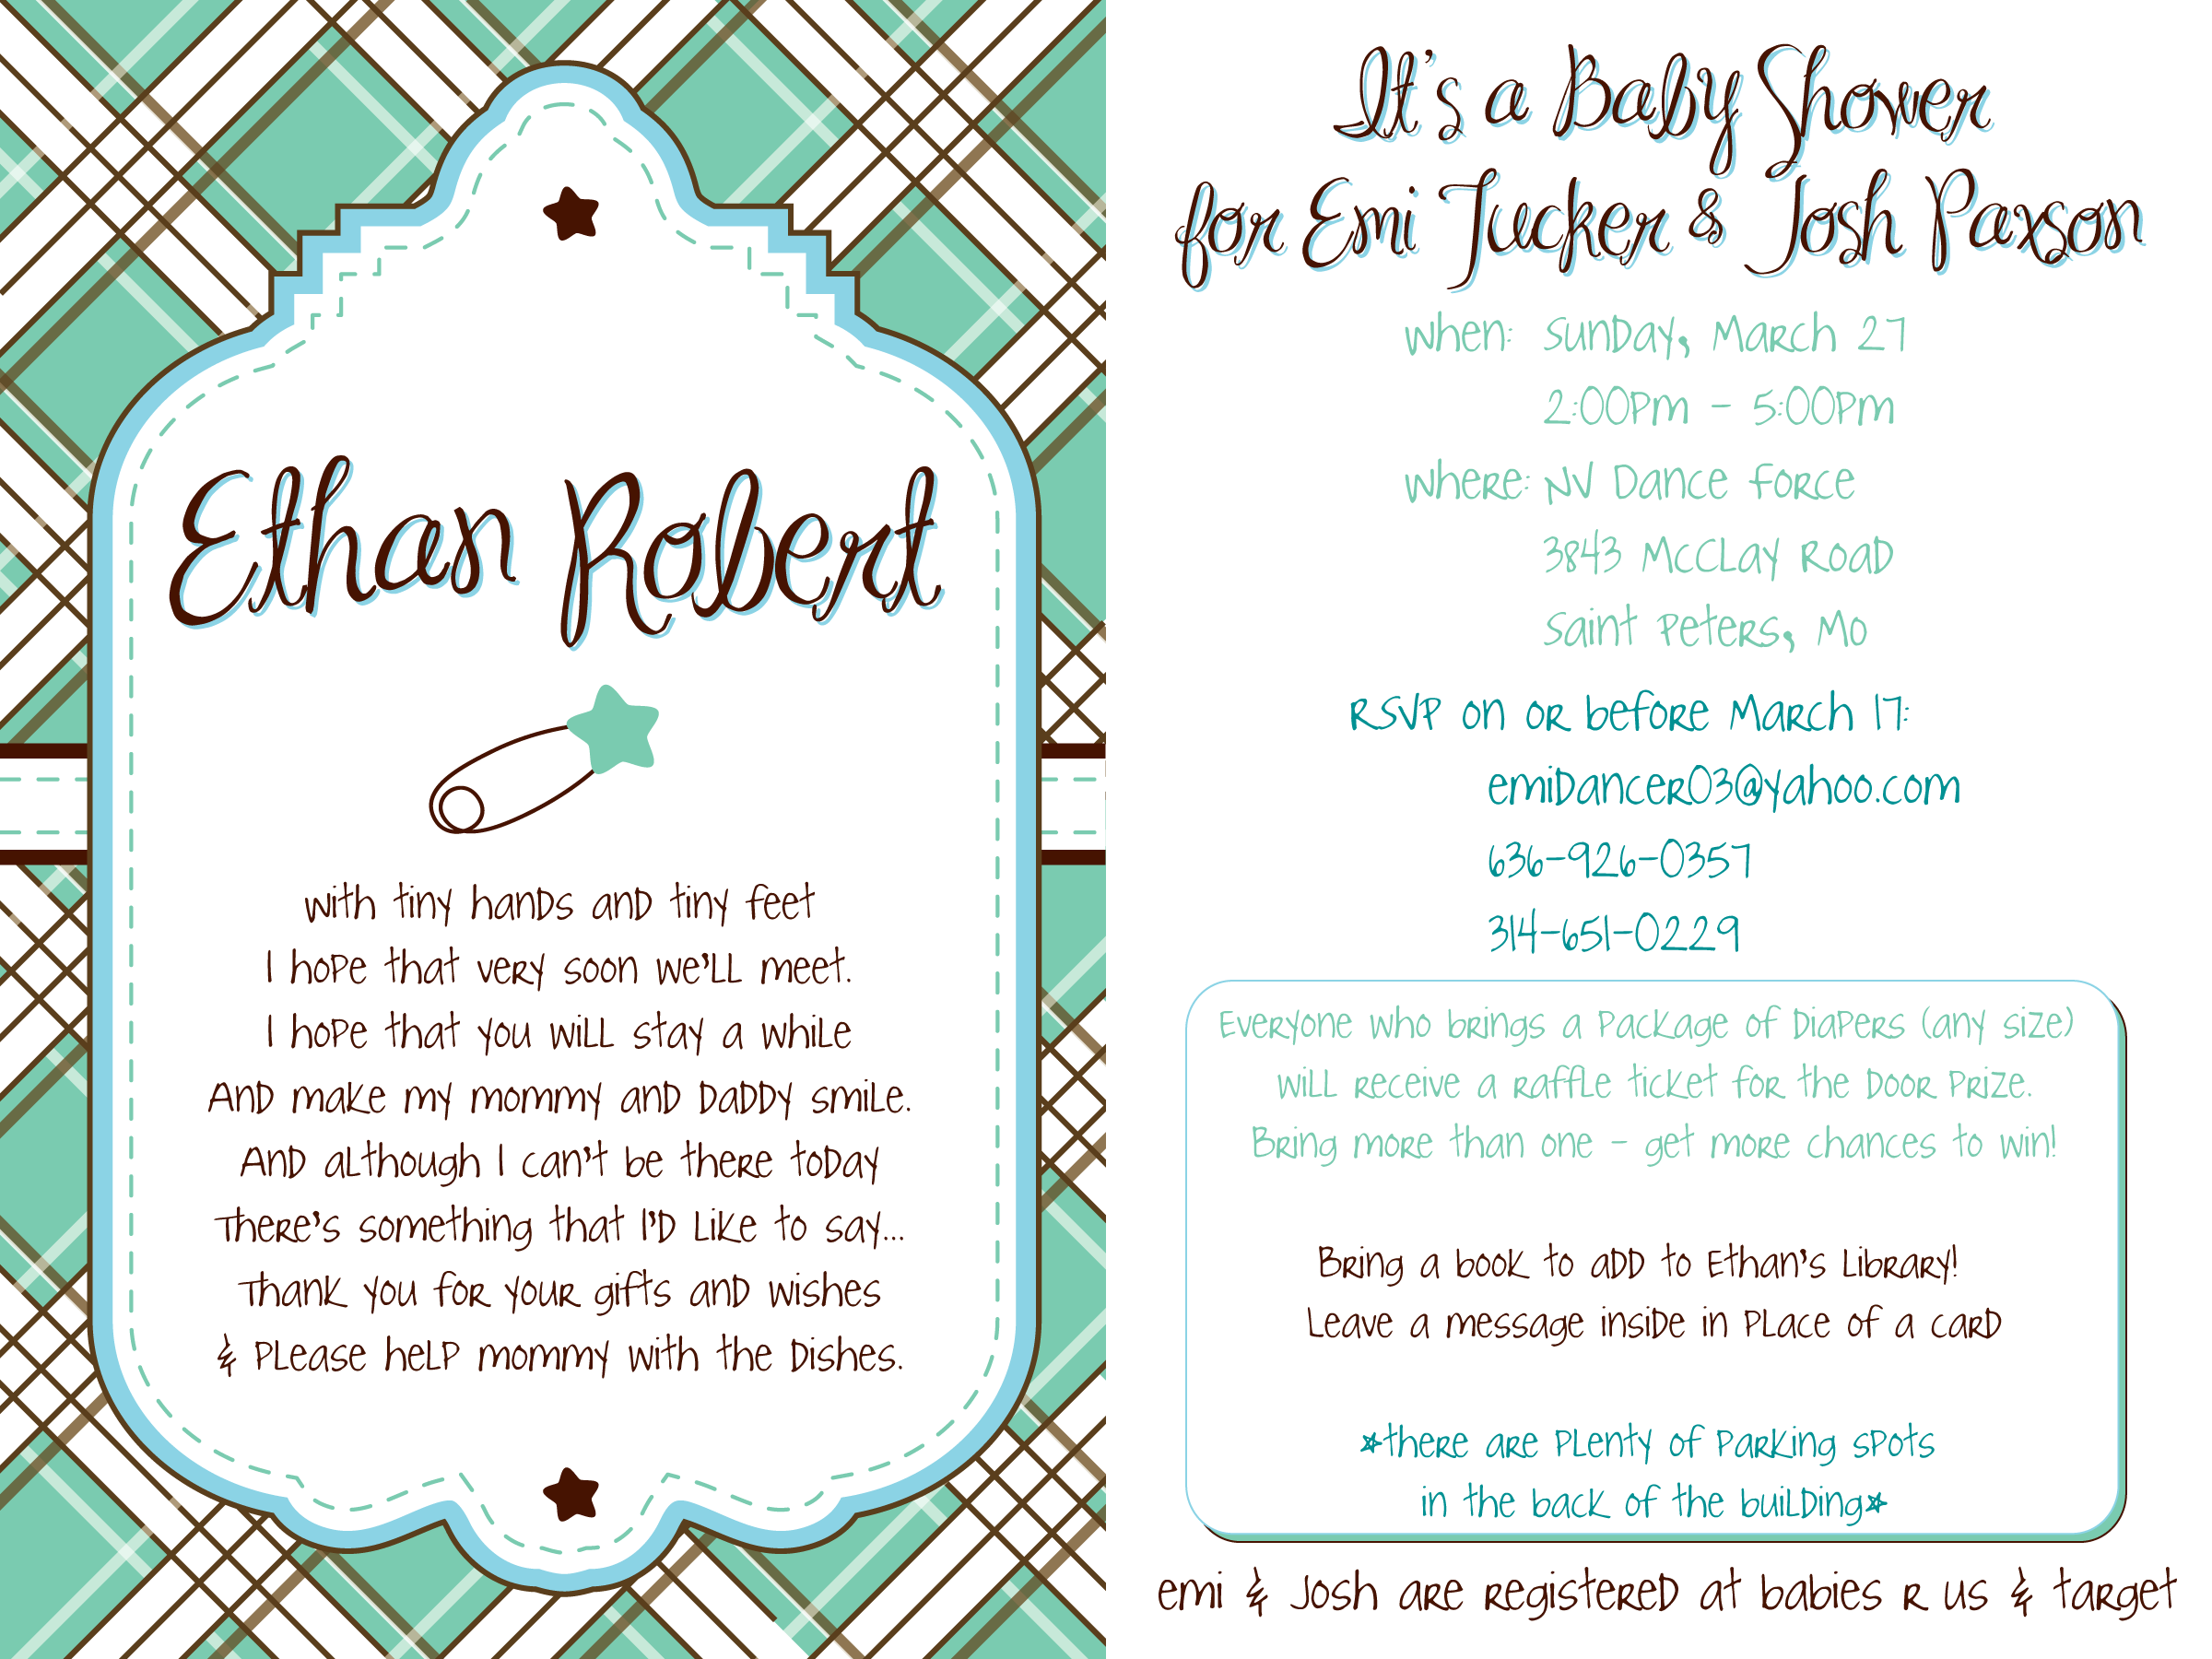 Full Size of Baby Shower:baby Shower Halls With Baby Shower At The Park Plus Recuerdos De Baby Shower Together With Fun Baby Shower Games As Well As Baby Shower Hostess Gifts And Baby Shower Verses Baby Shower Invitation Wording Printable Baby Shower Invite Wording For A Boy With Blue Modern Inspirational Hd Photo Wording